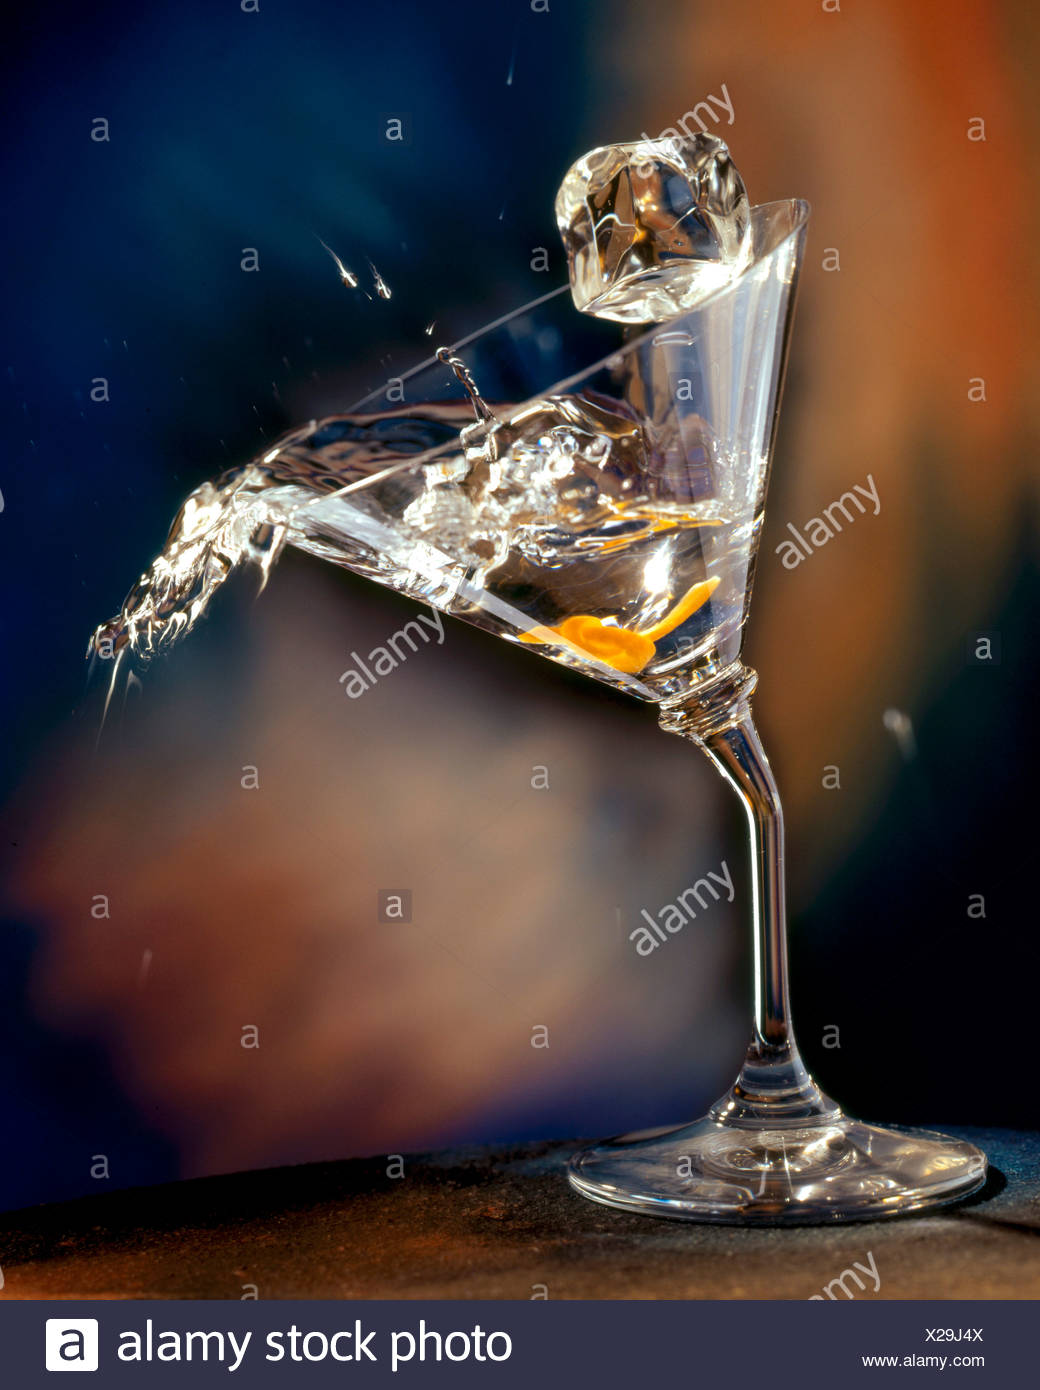 Vodka Martini Spilling From a Bent Martini Glass with Ice Cube - Stock Image